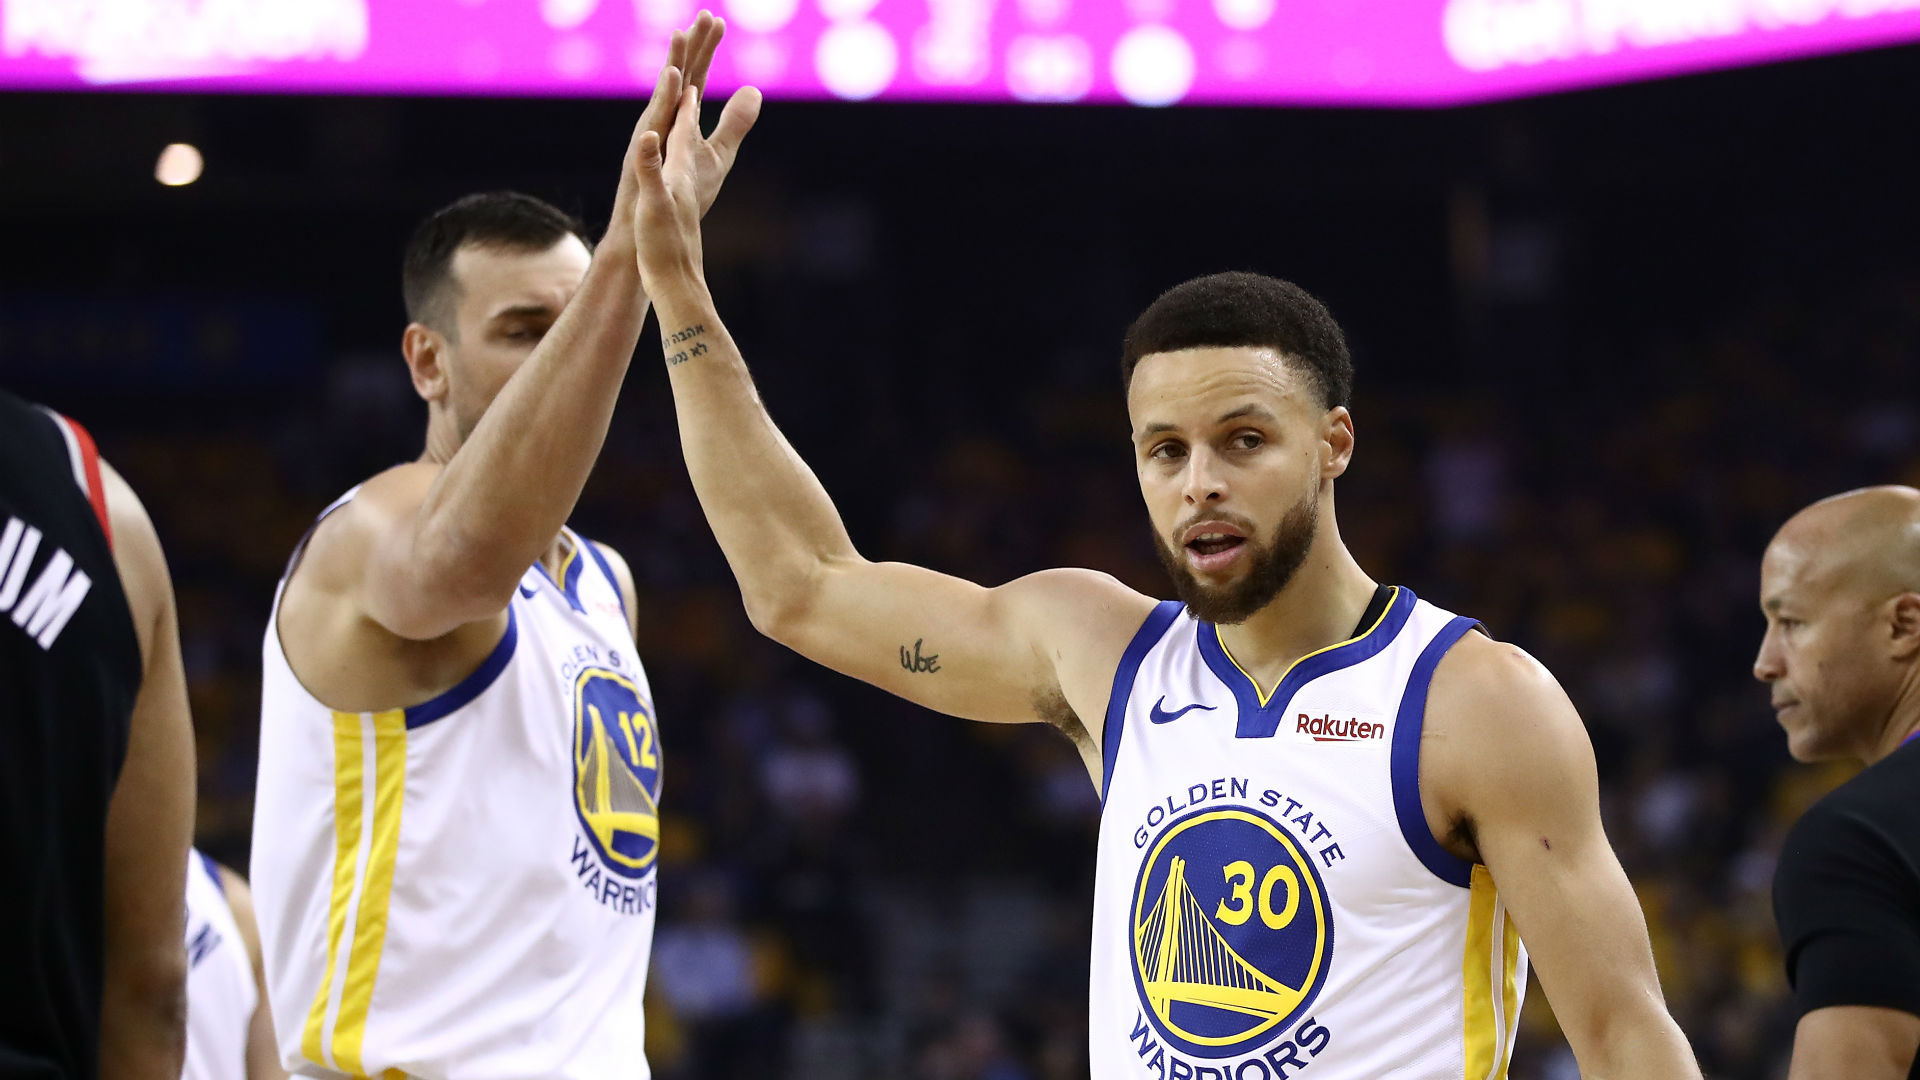 Three takeaways from Warriors' dominant Game 1 win over Trail Blazers